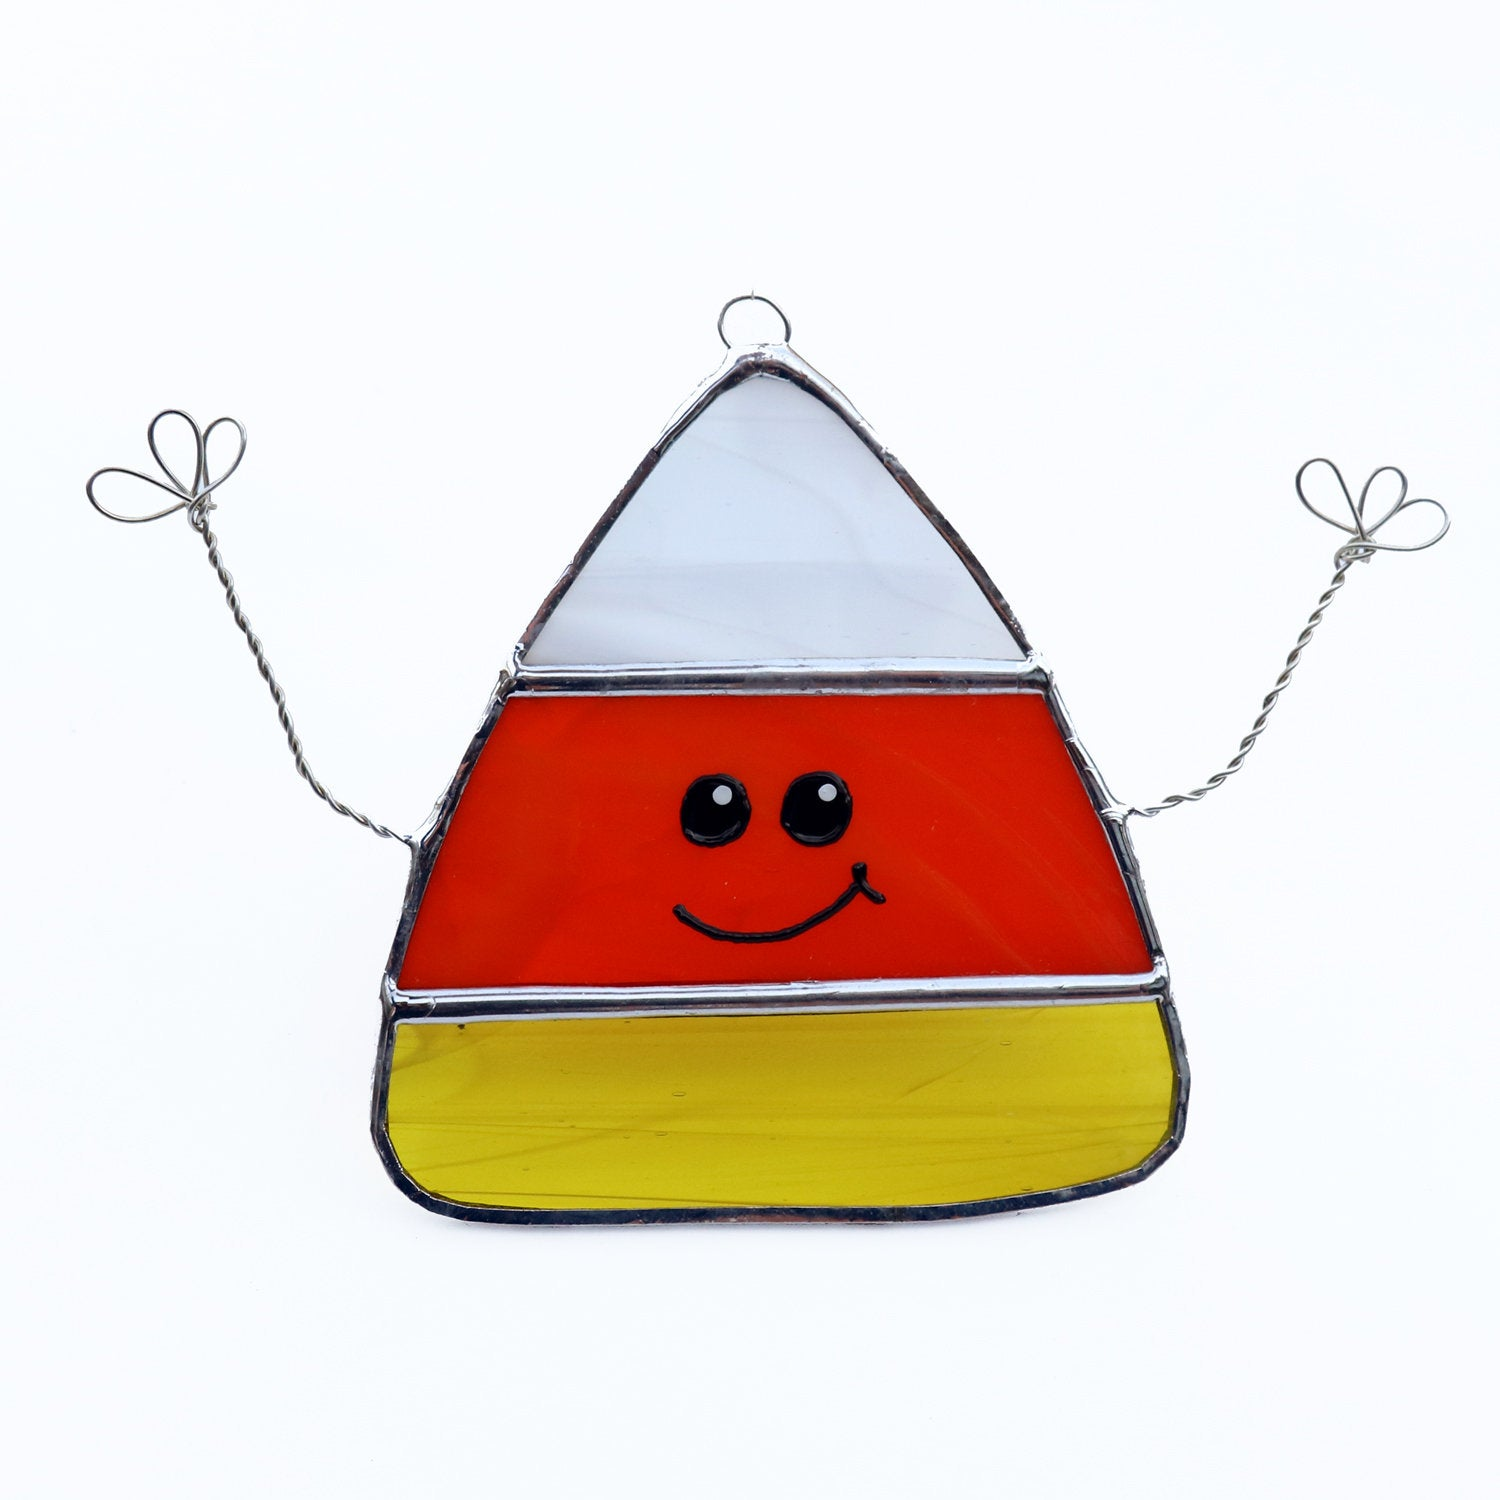 1500x1500 Candy Corn Halloween Decoration Stained Glass Window Etsy